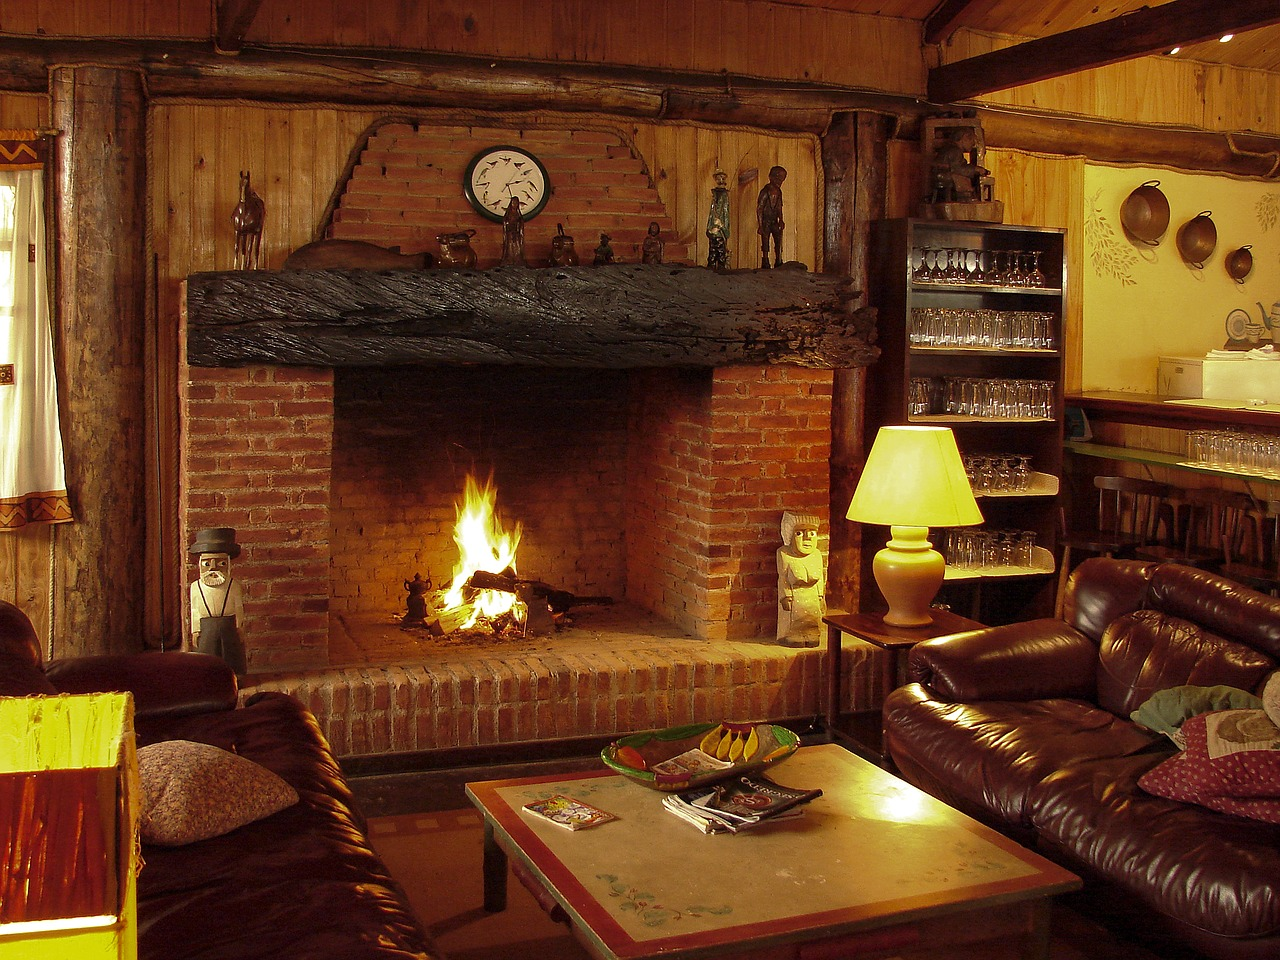 A rustic living room with a fireplace made of stones